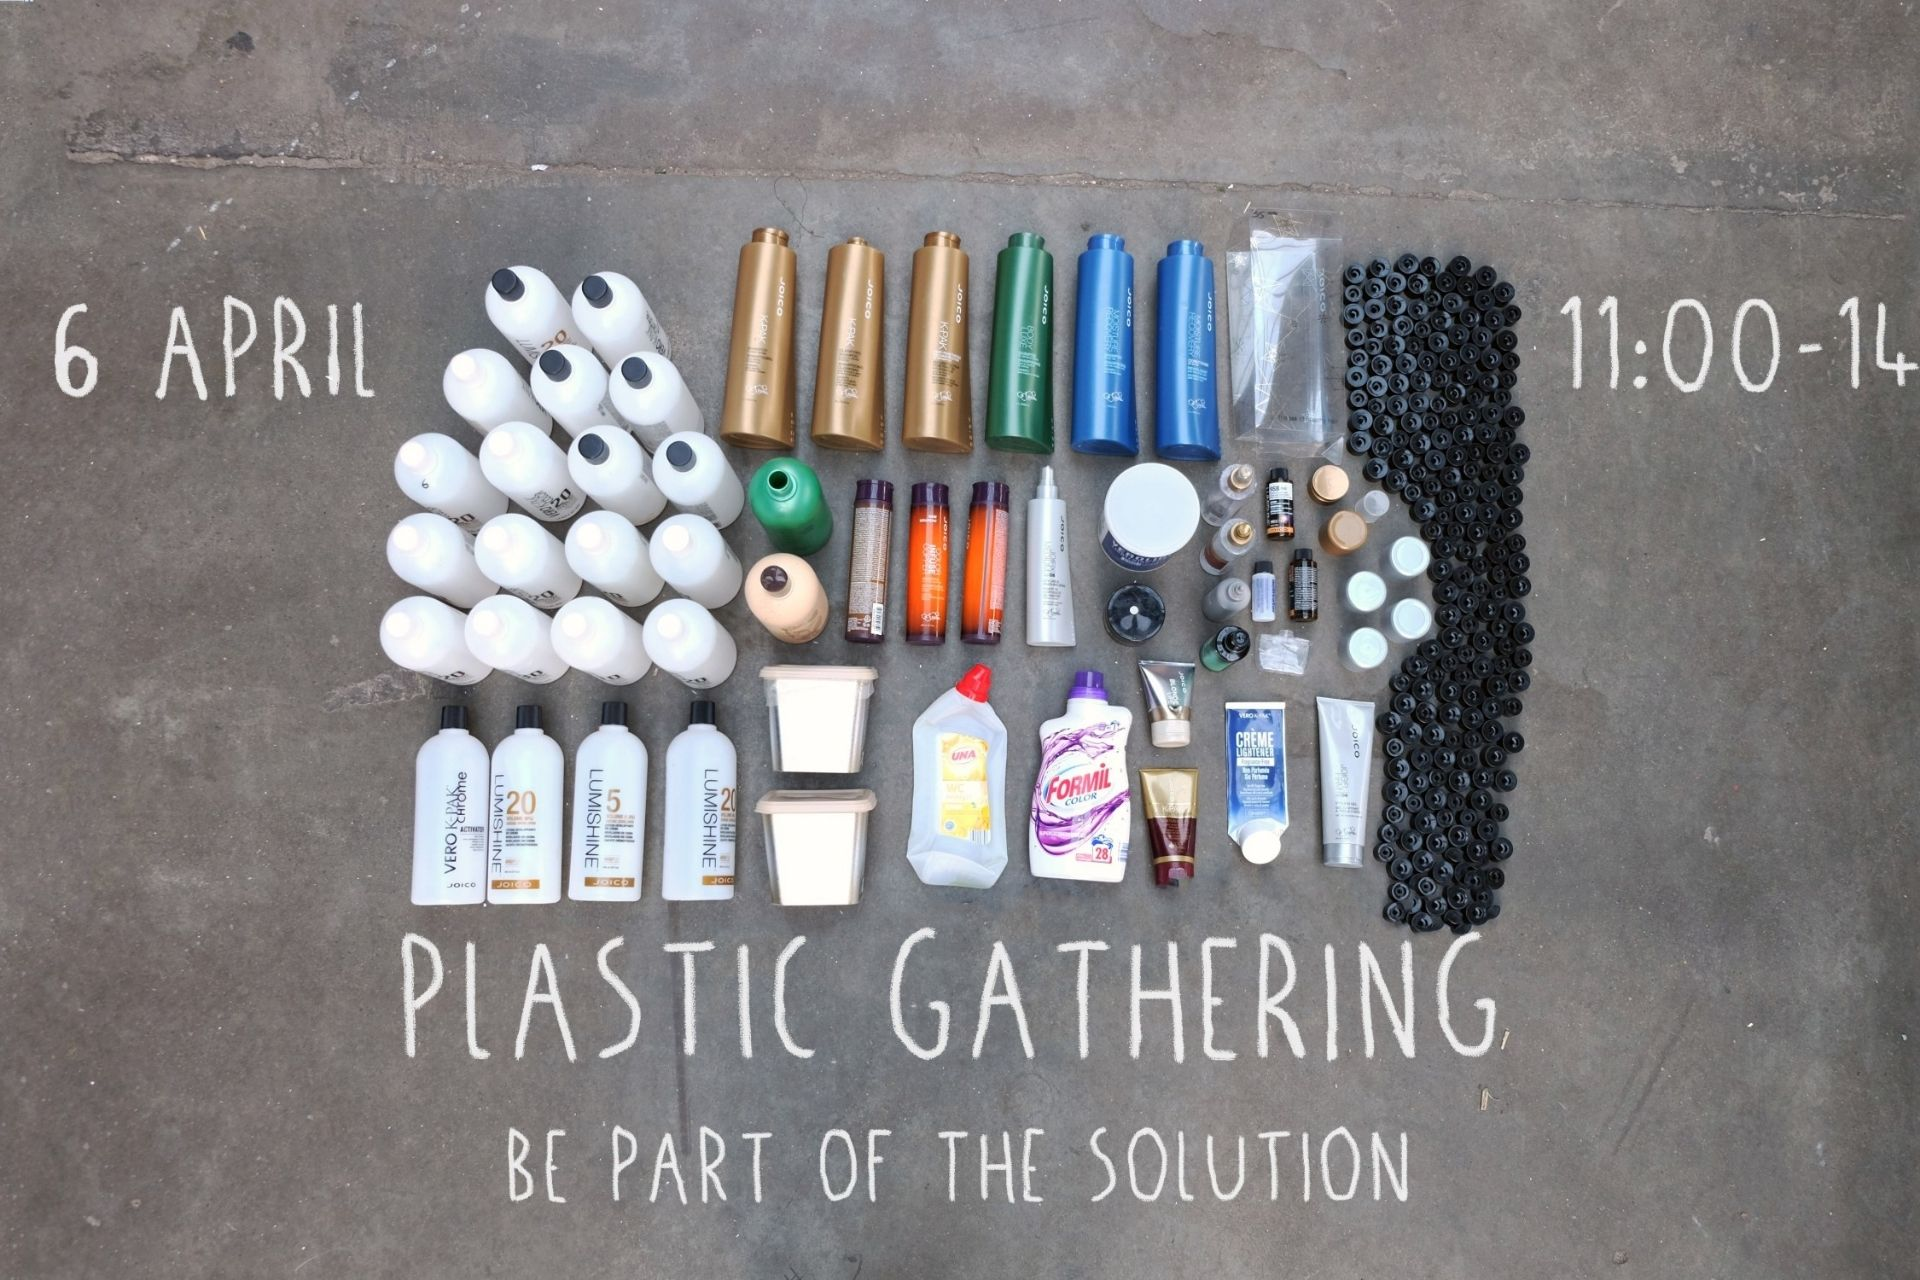 Plastic Gathering event Eindhoven HQ